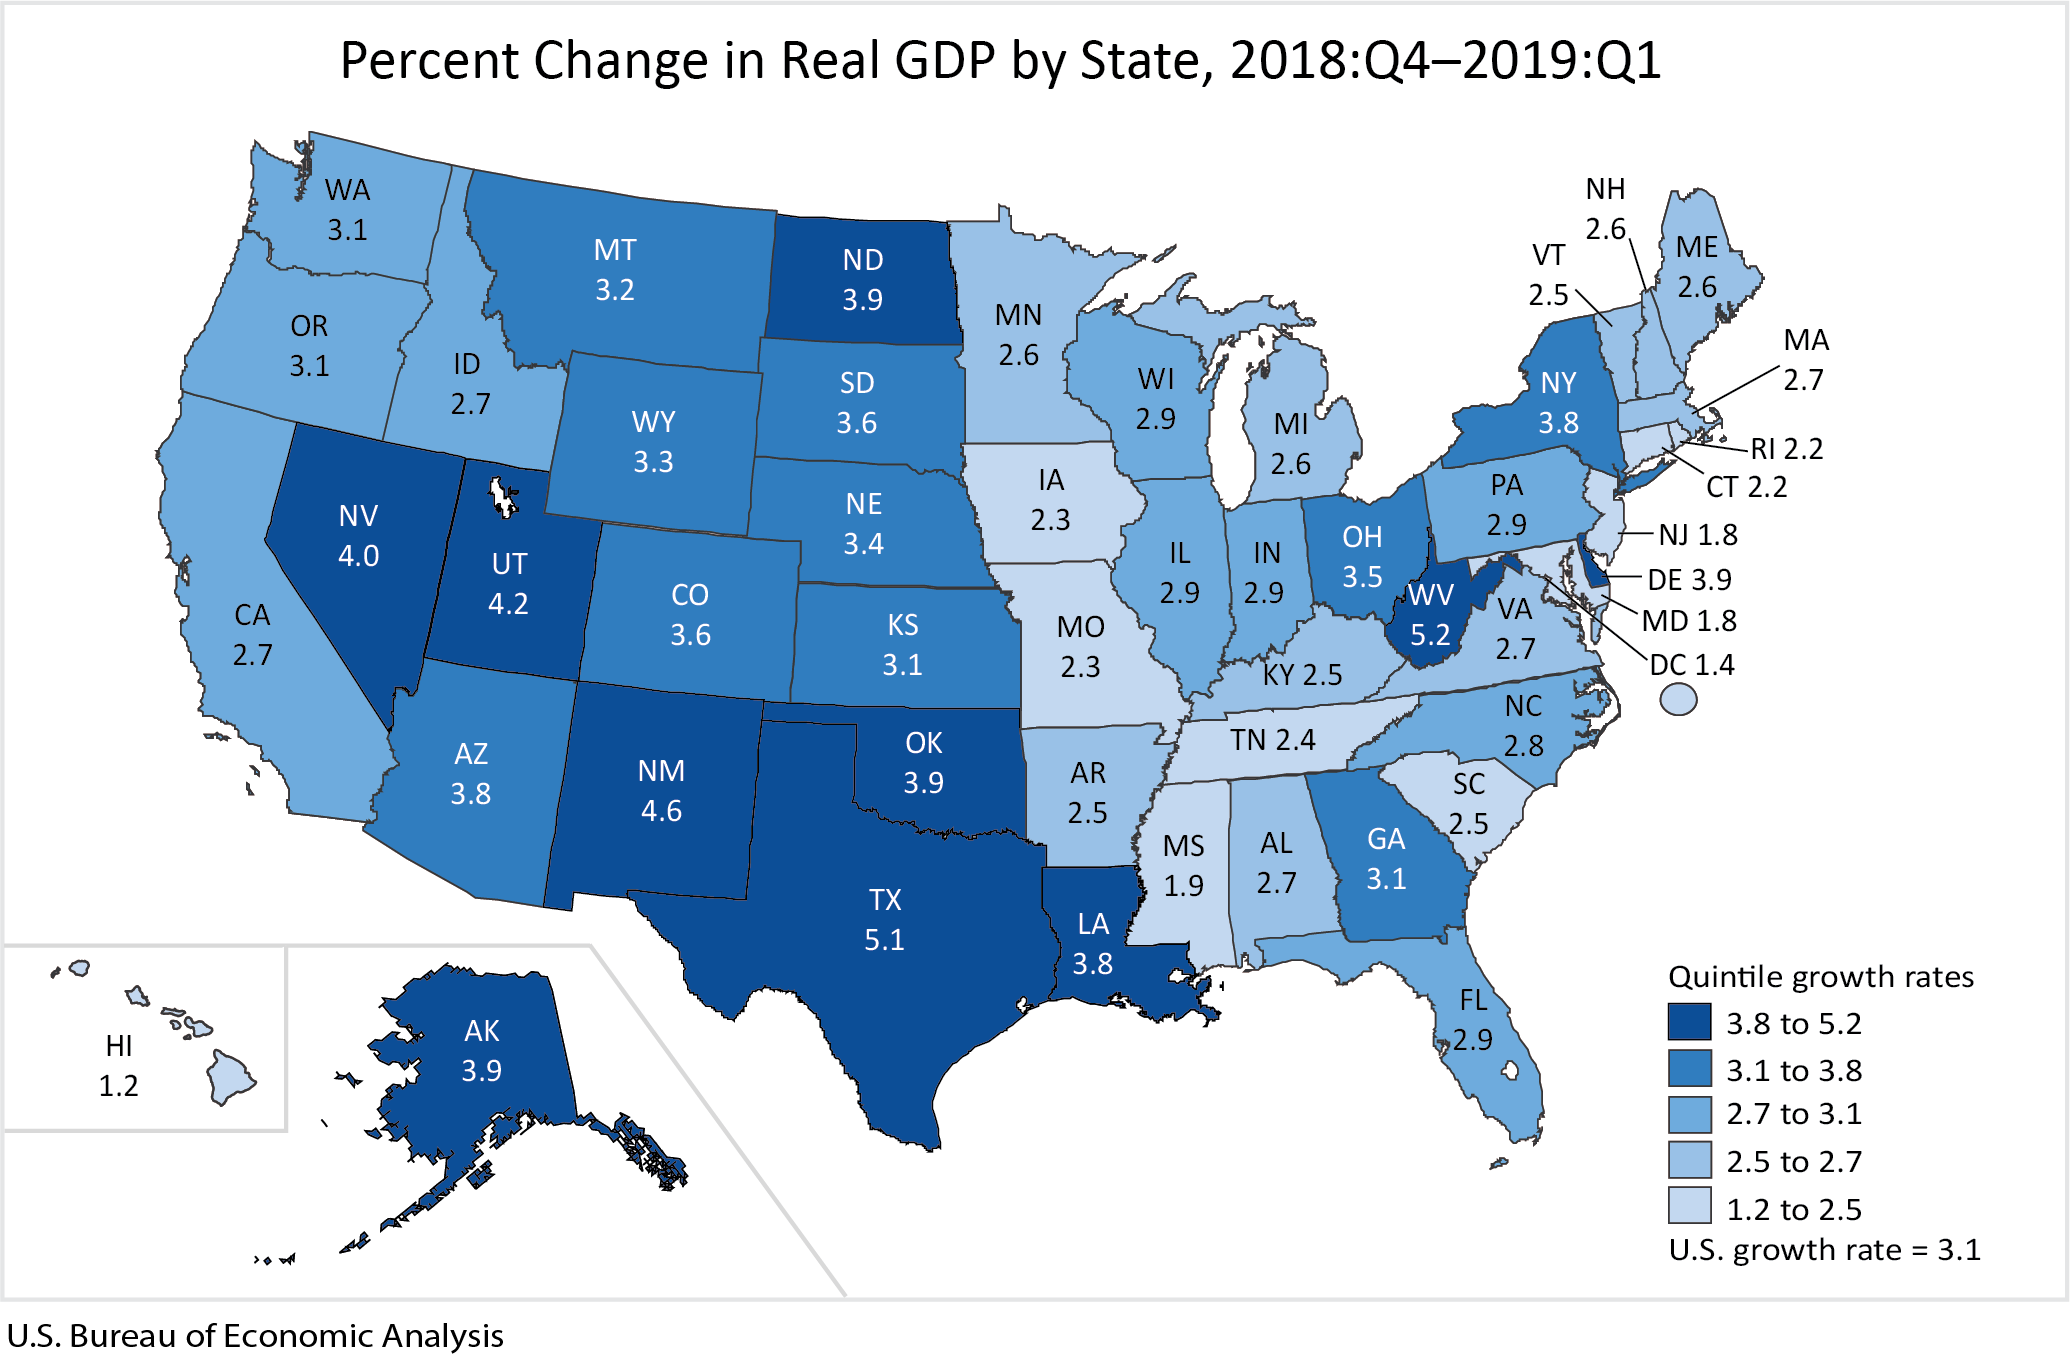 Chart: Percent Change in Real GDP by State, 2018:Q4-2019:Q1